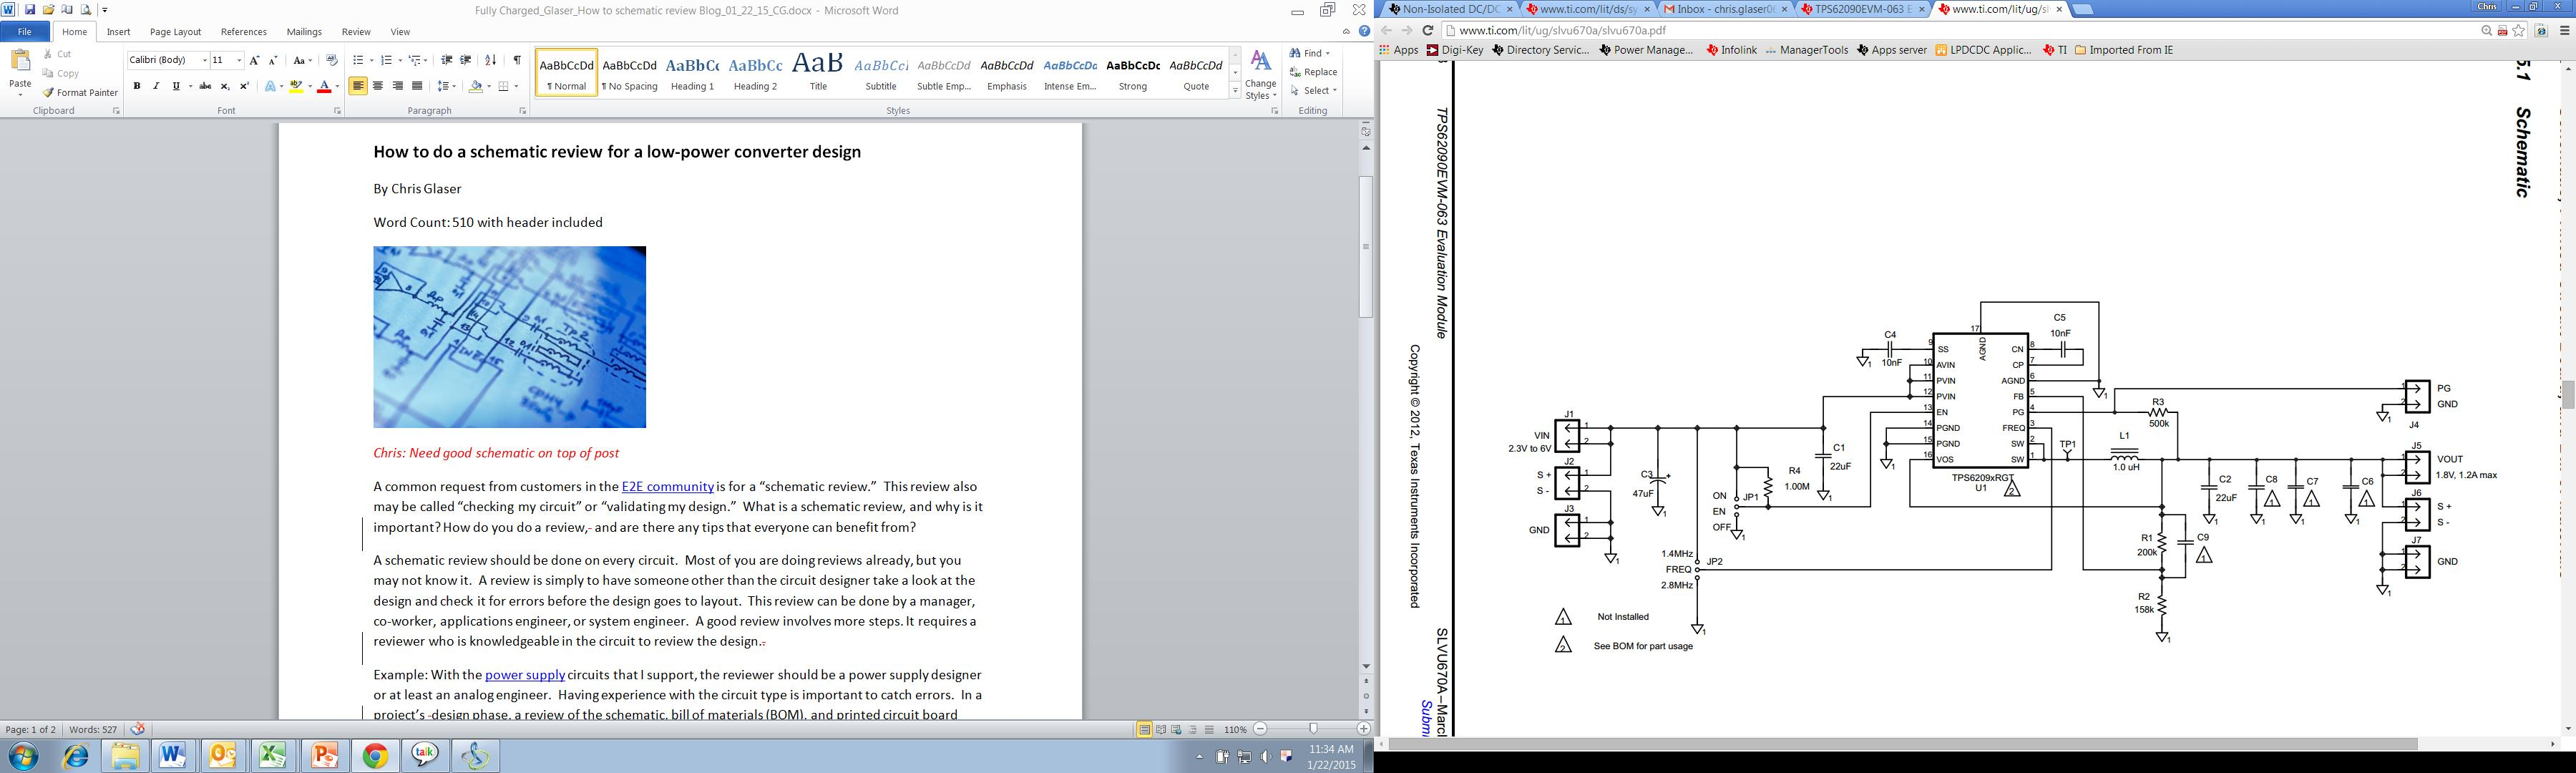 How to do a Schematic Review for a low-power DC/DC converter design What Is A Schematic on whats a transistor, whats a cable, whats a breadboard, whats a monitor, whats a thematic map, whats a operation, schematic editor, electronic design automation, data flow diagram, whats a power, function block diagram, whats a tool, whats a circuit, tube map, whats a layout, cross section, functional flow block diagram, block diagram, whats a introduction, whats a architecture, whats a amplifier, piping and instrumentation diagram, whats a block, one-line diagram, control flow diagram, whats a illustration, ladder logic, straight-line diagram, whats a output, diagramming software, technical drawing, schematic capture, circuit diagram, whats a drawing, whats a symbol, whats a software, whats a interface,